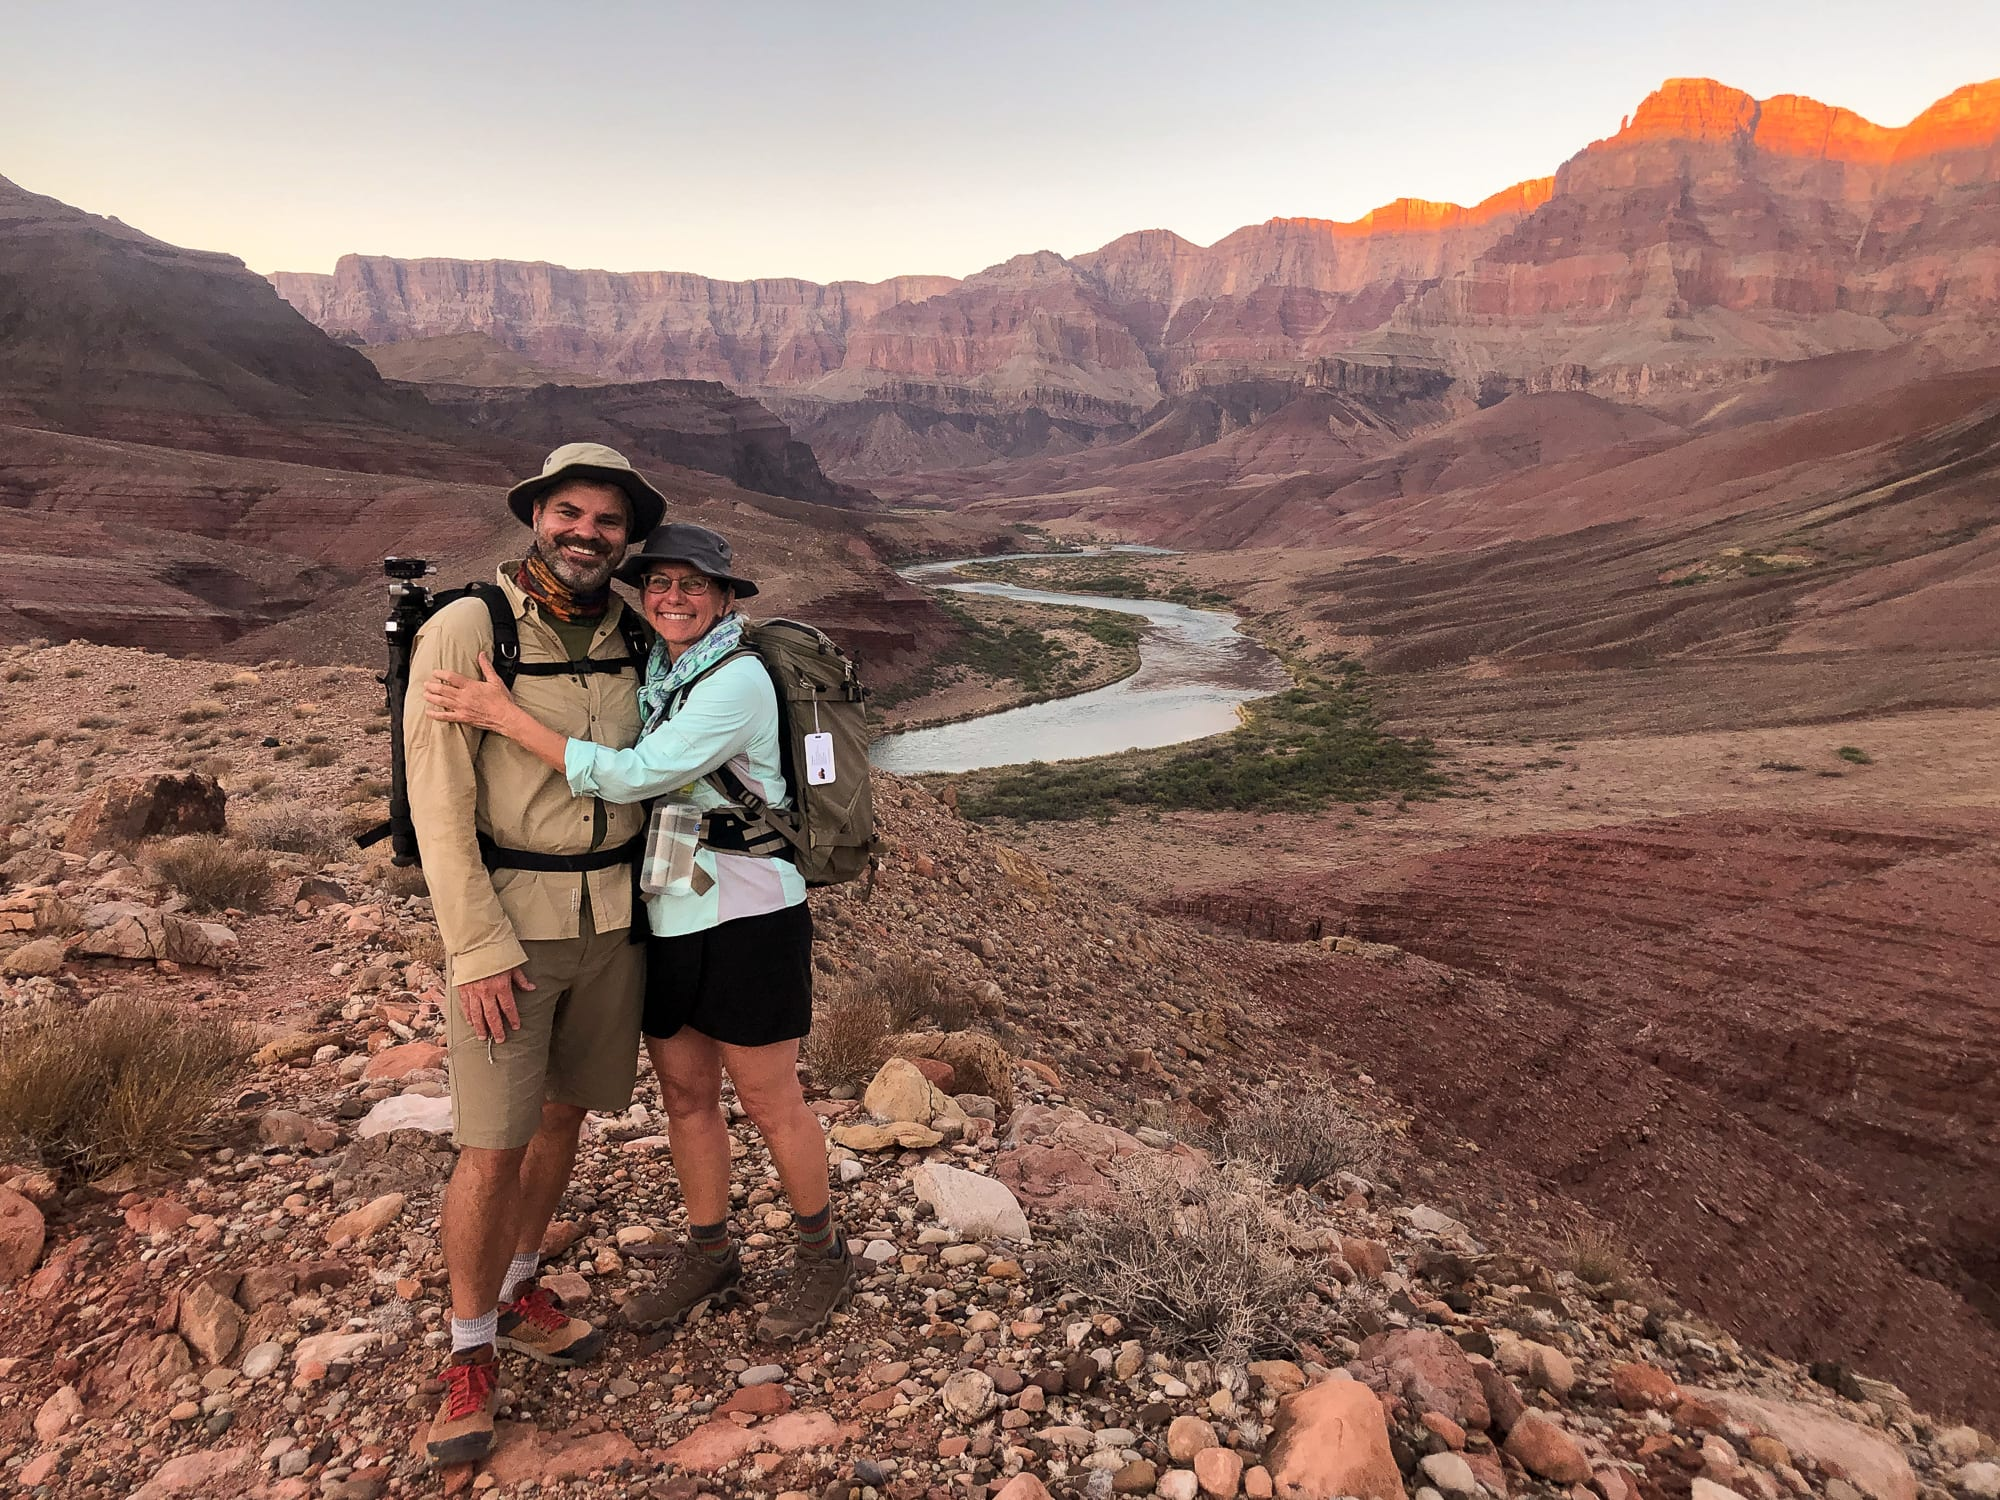 Two hikers on the Escalante Trail at sunset overlooking the Cardenas Camp and Colorado River in the Grand Canyon.